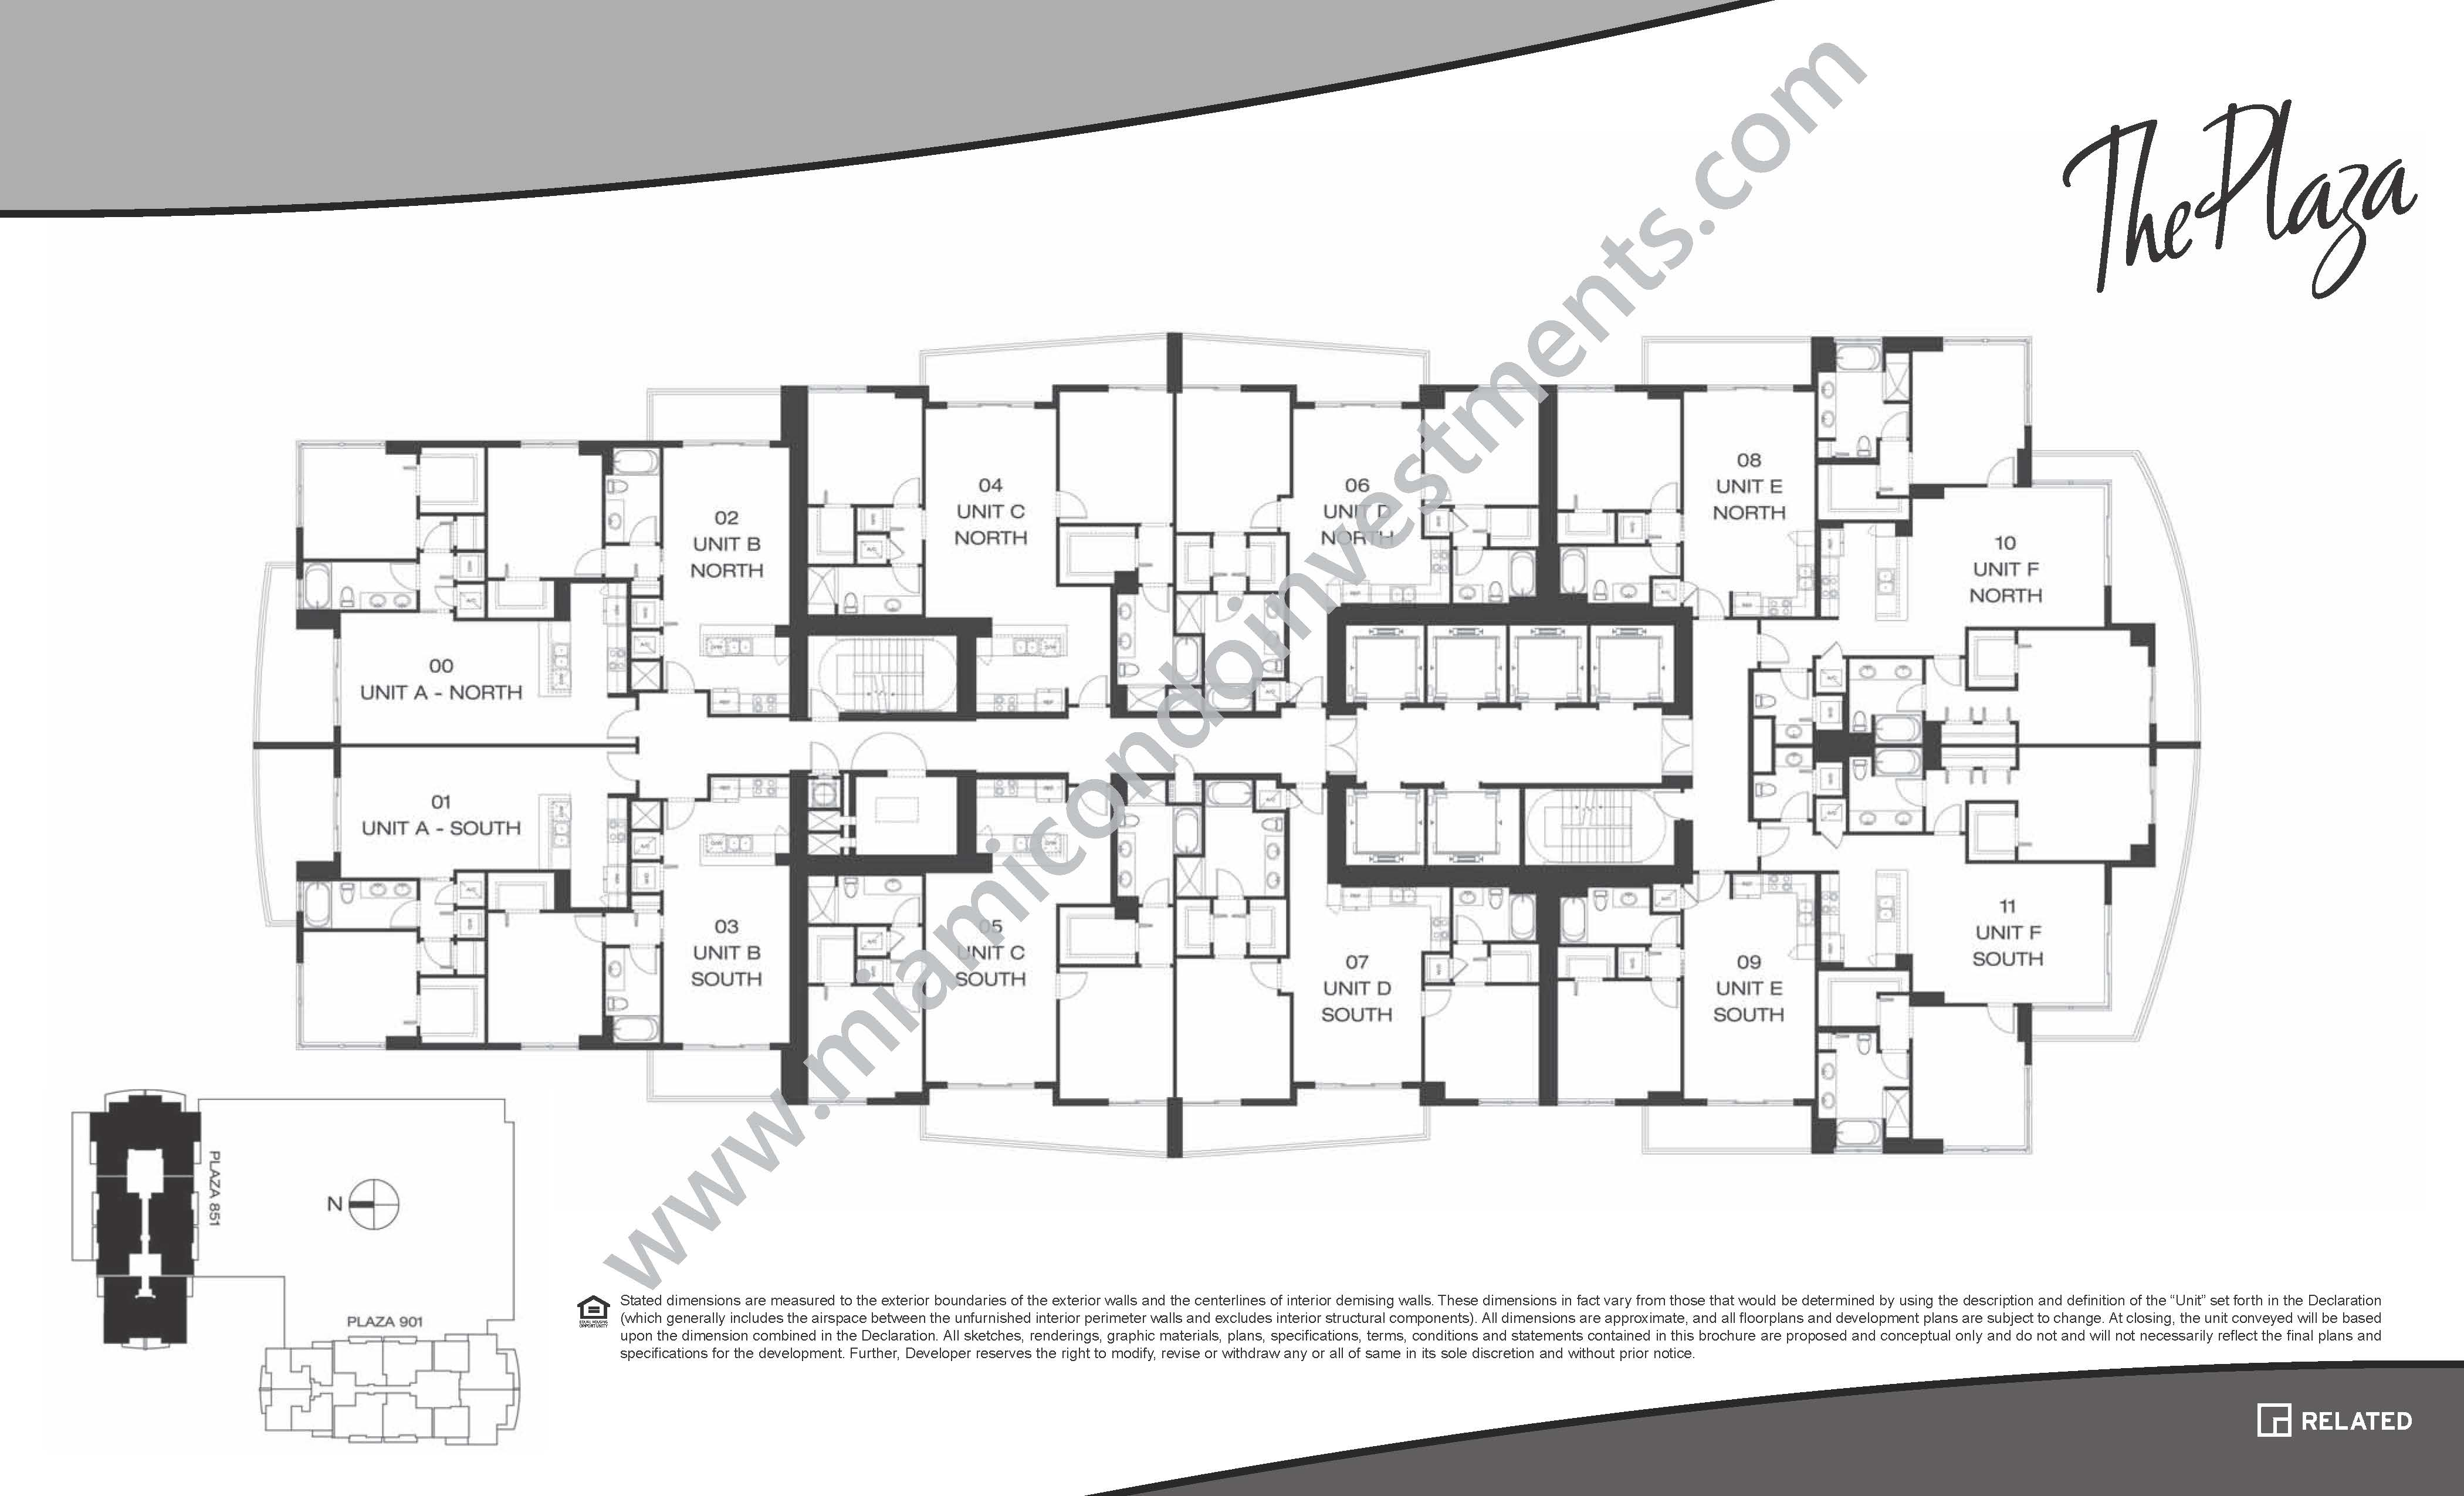 the-plaza-on-brickell-east-condos-site-plan